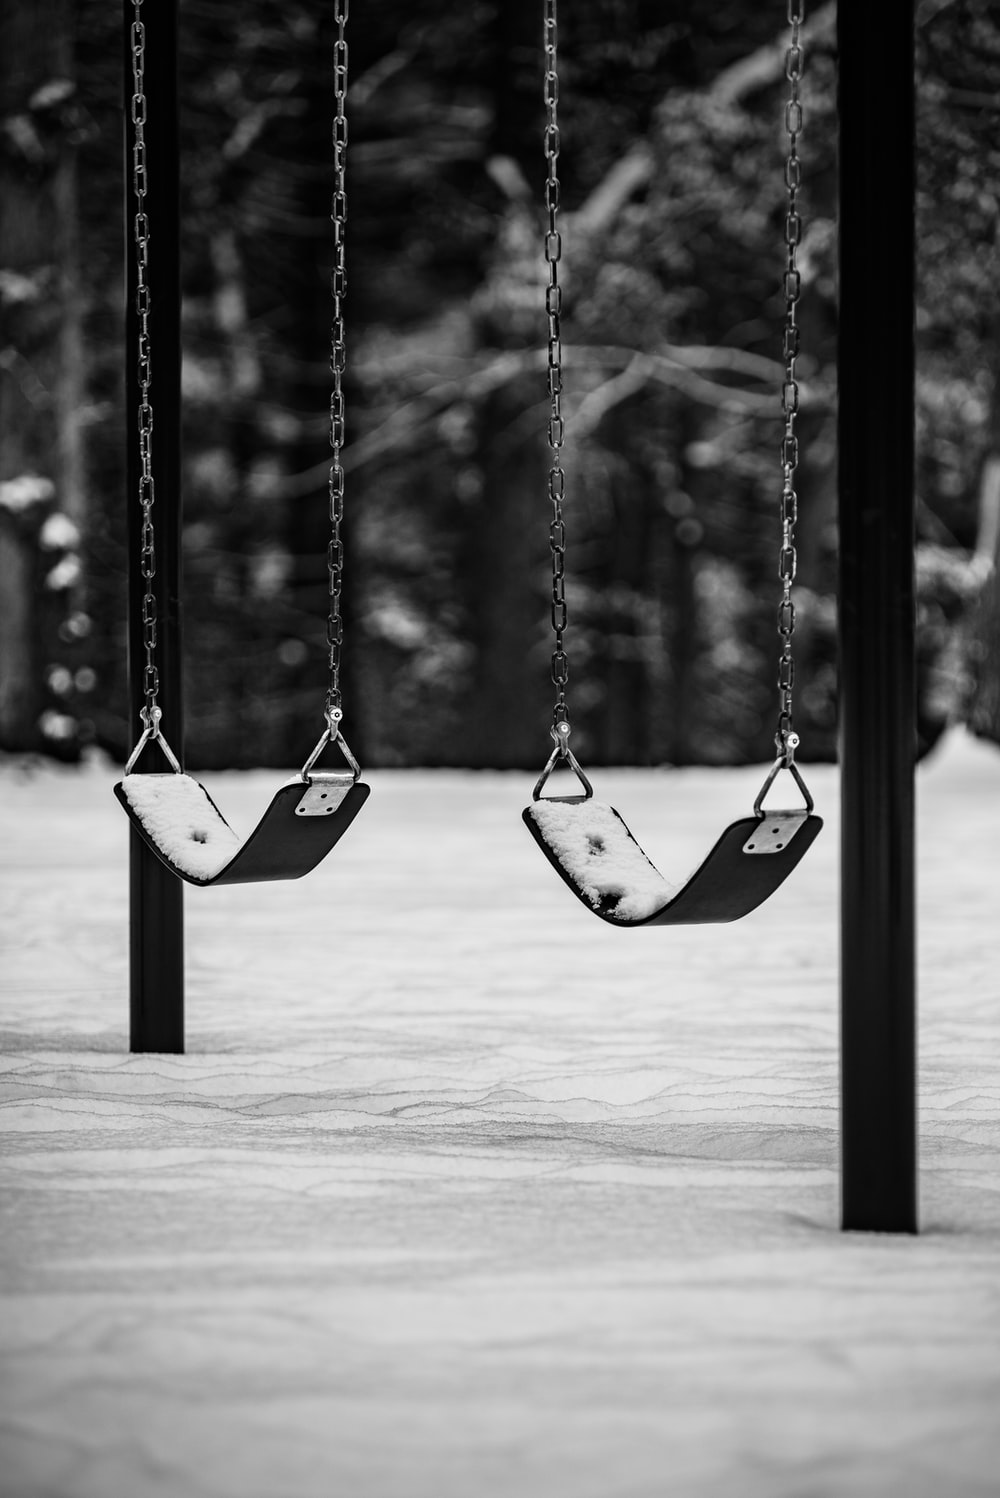 two swings with chain handles